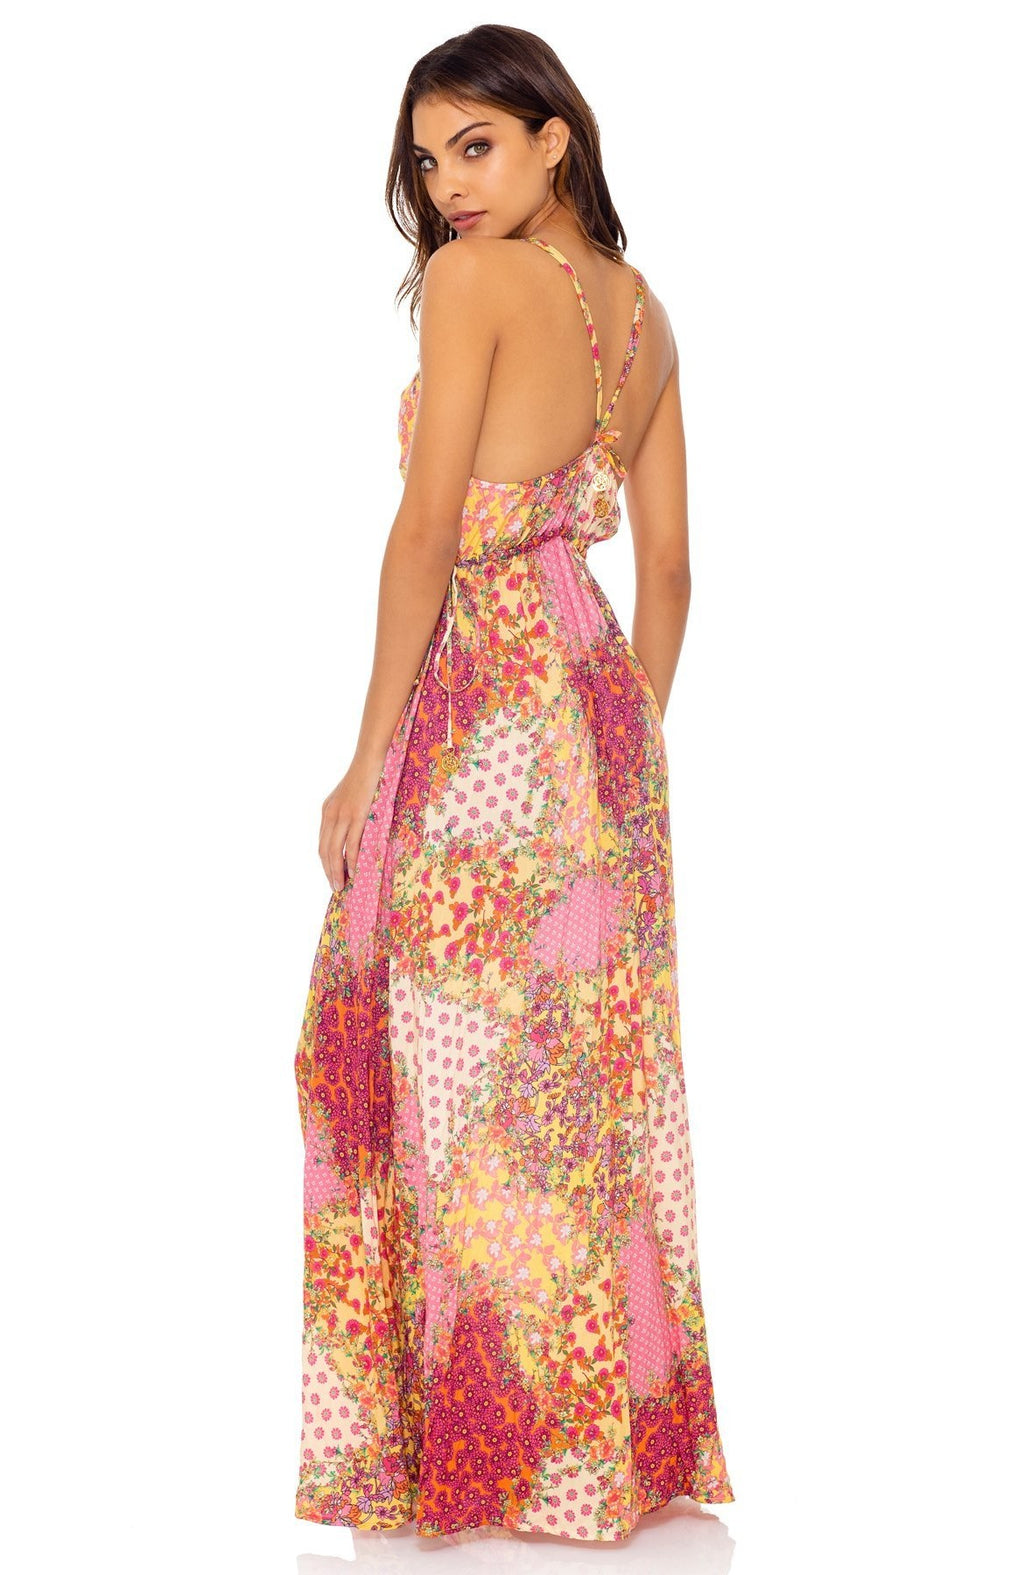 Luli Fama Gypsy Dream V-Neck Long Dress